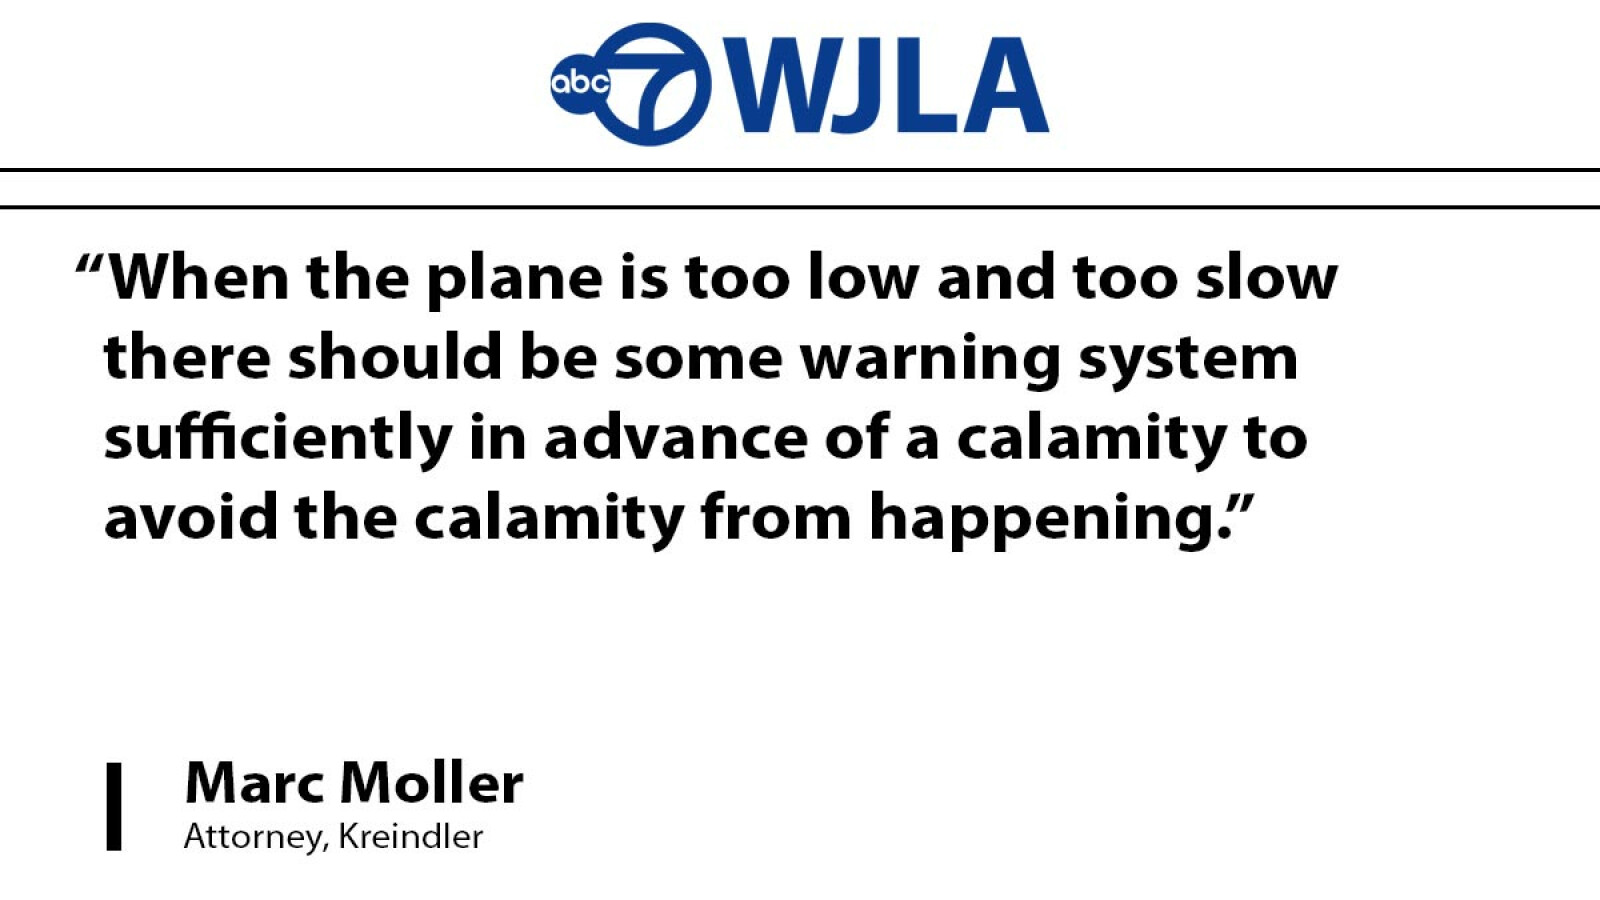 Avaition attorney Marc Moller consulted in news story about Asiana Flight 214 air tragedy